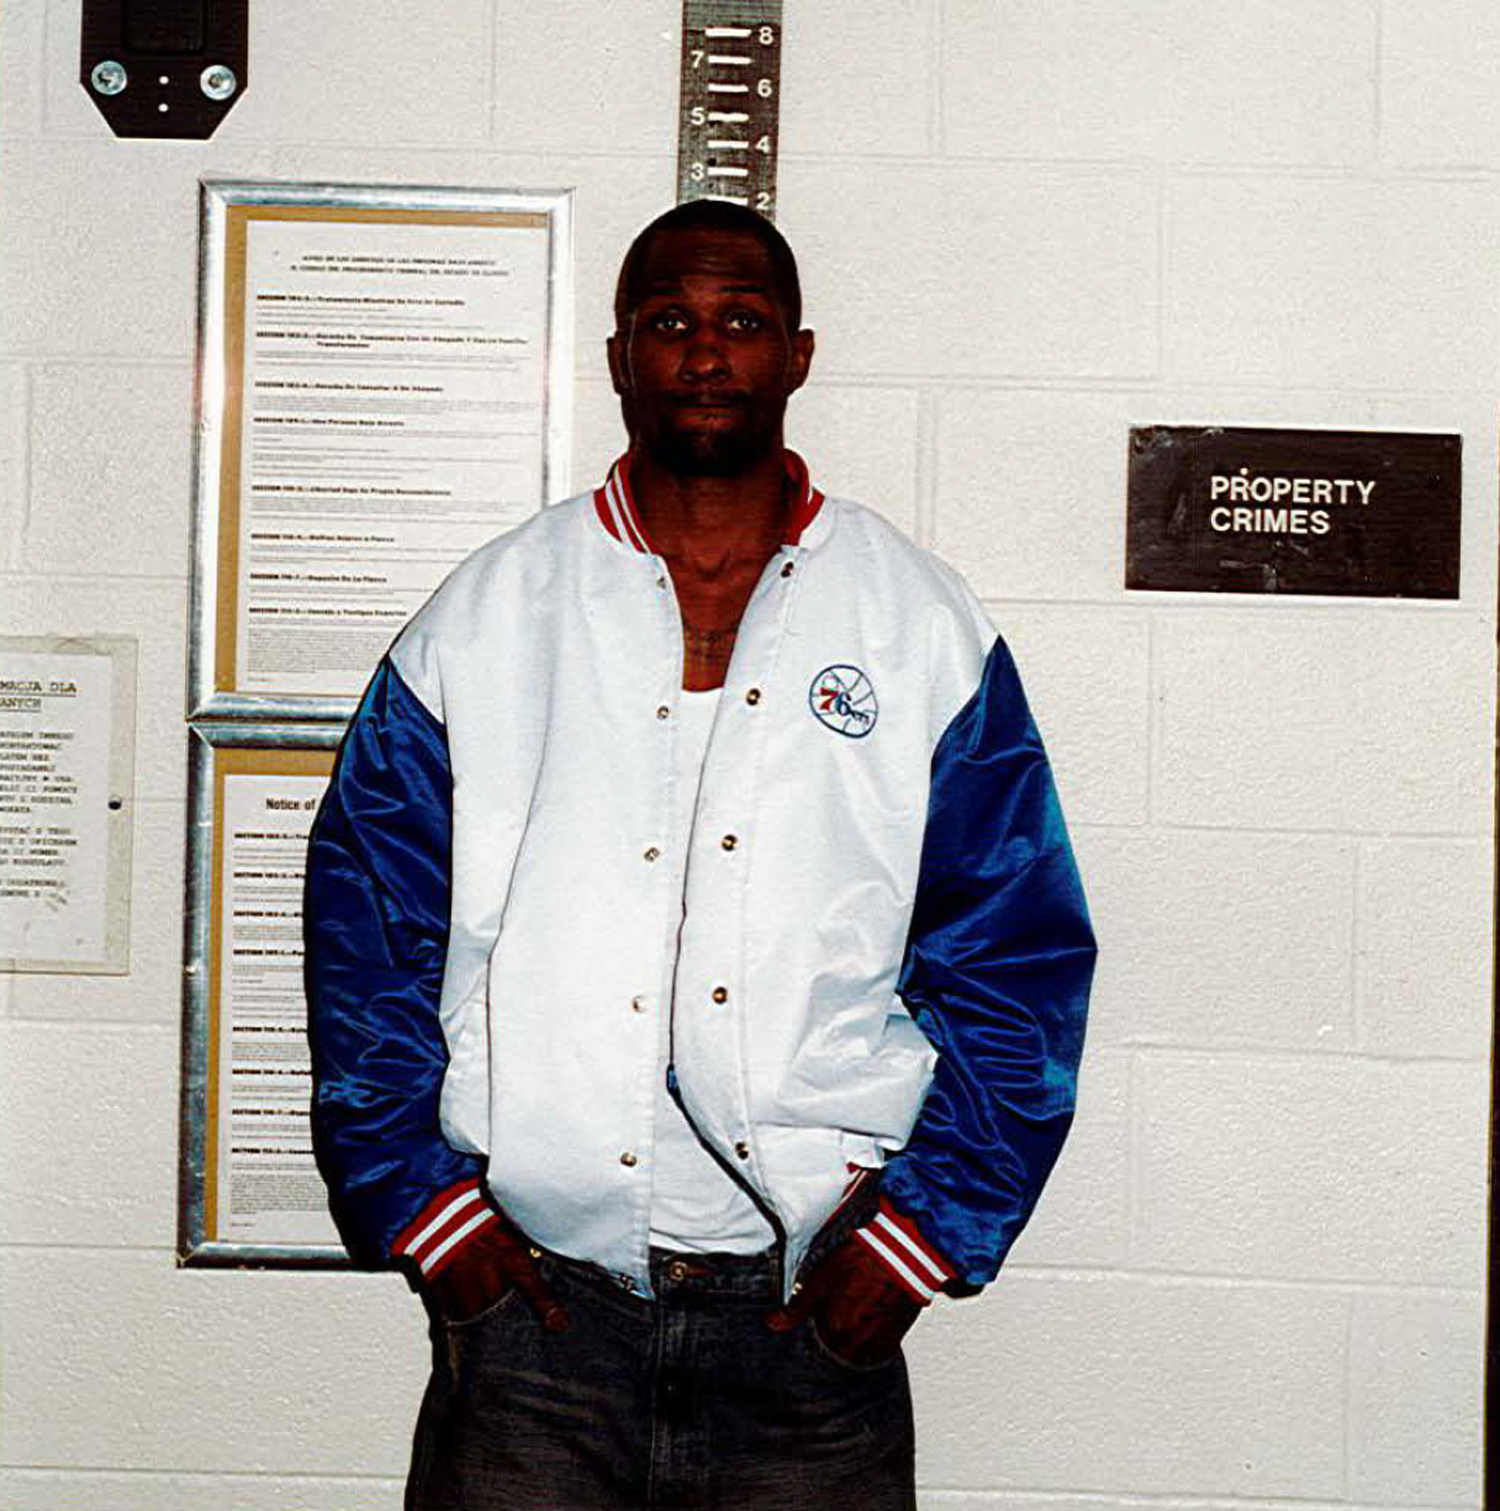 Four Corner Hustlers enforcer Sammie Booker's 2003 arrest photo after he was charged with armed robbery in Chicago.